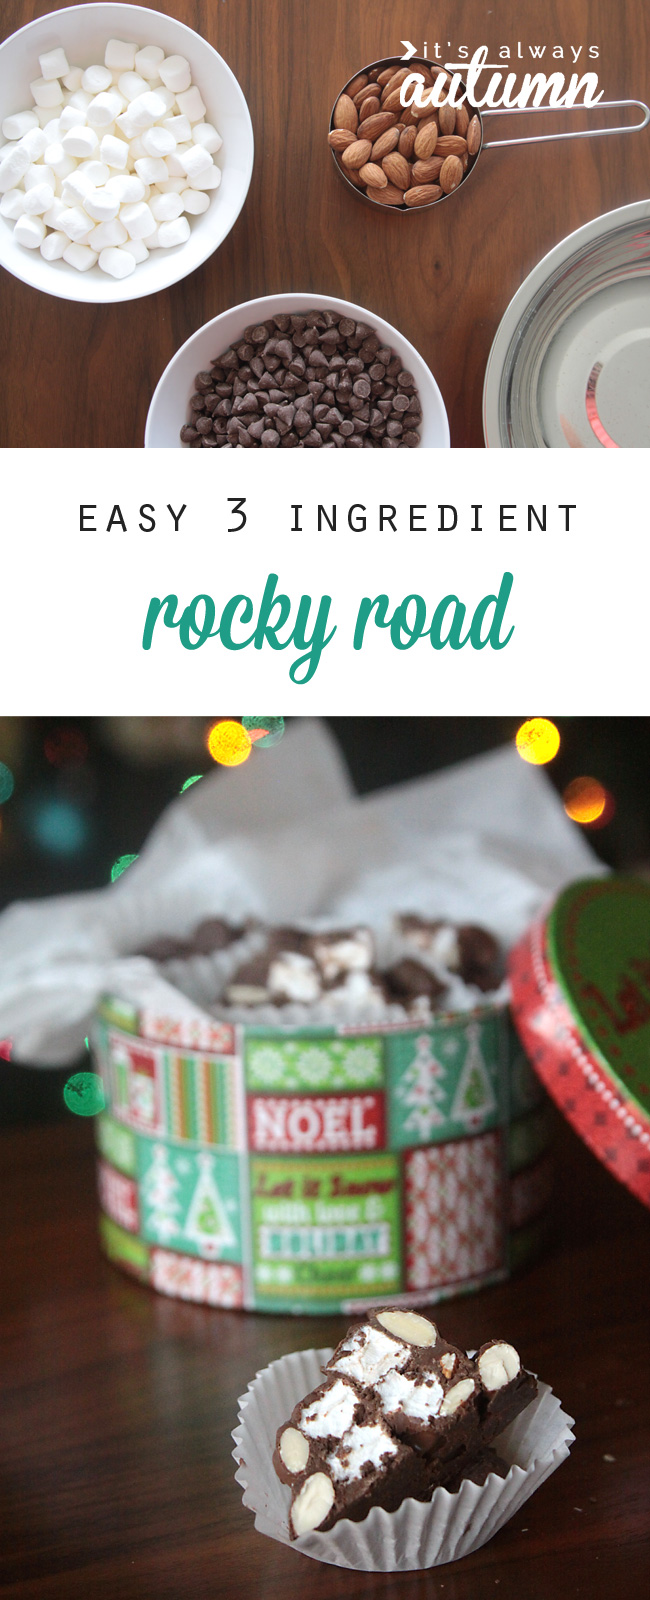 Marshmallows, almonds and chocolate; homemade rocky road candy in a Christmas candy tin